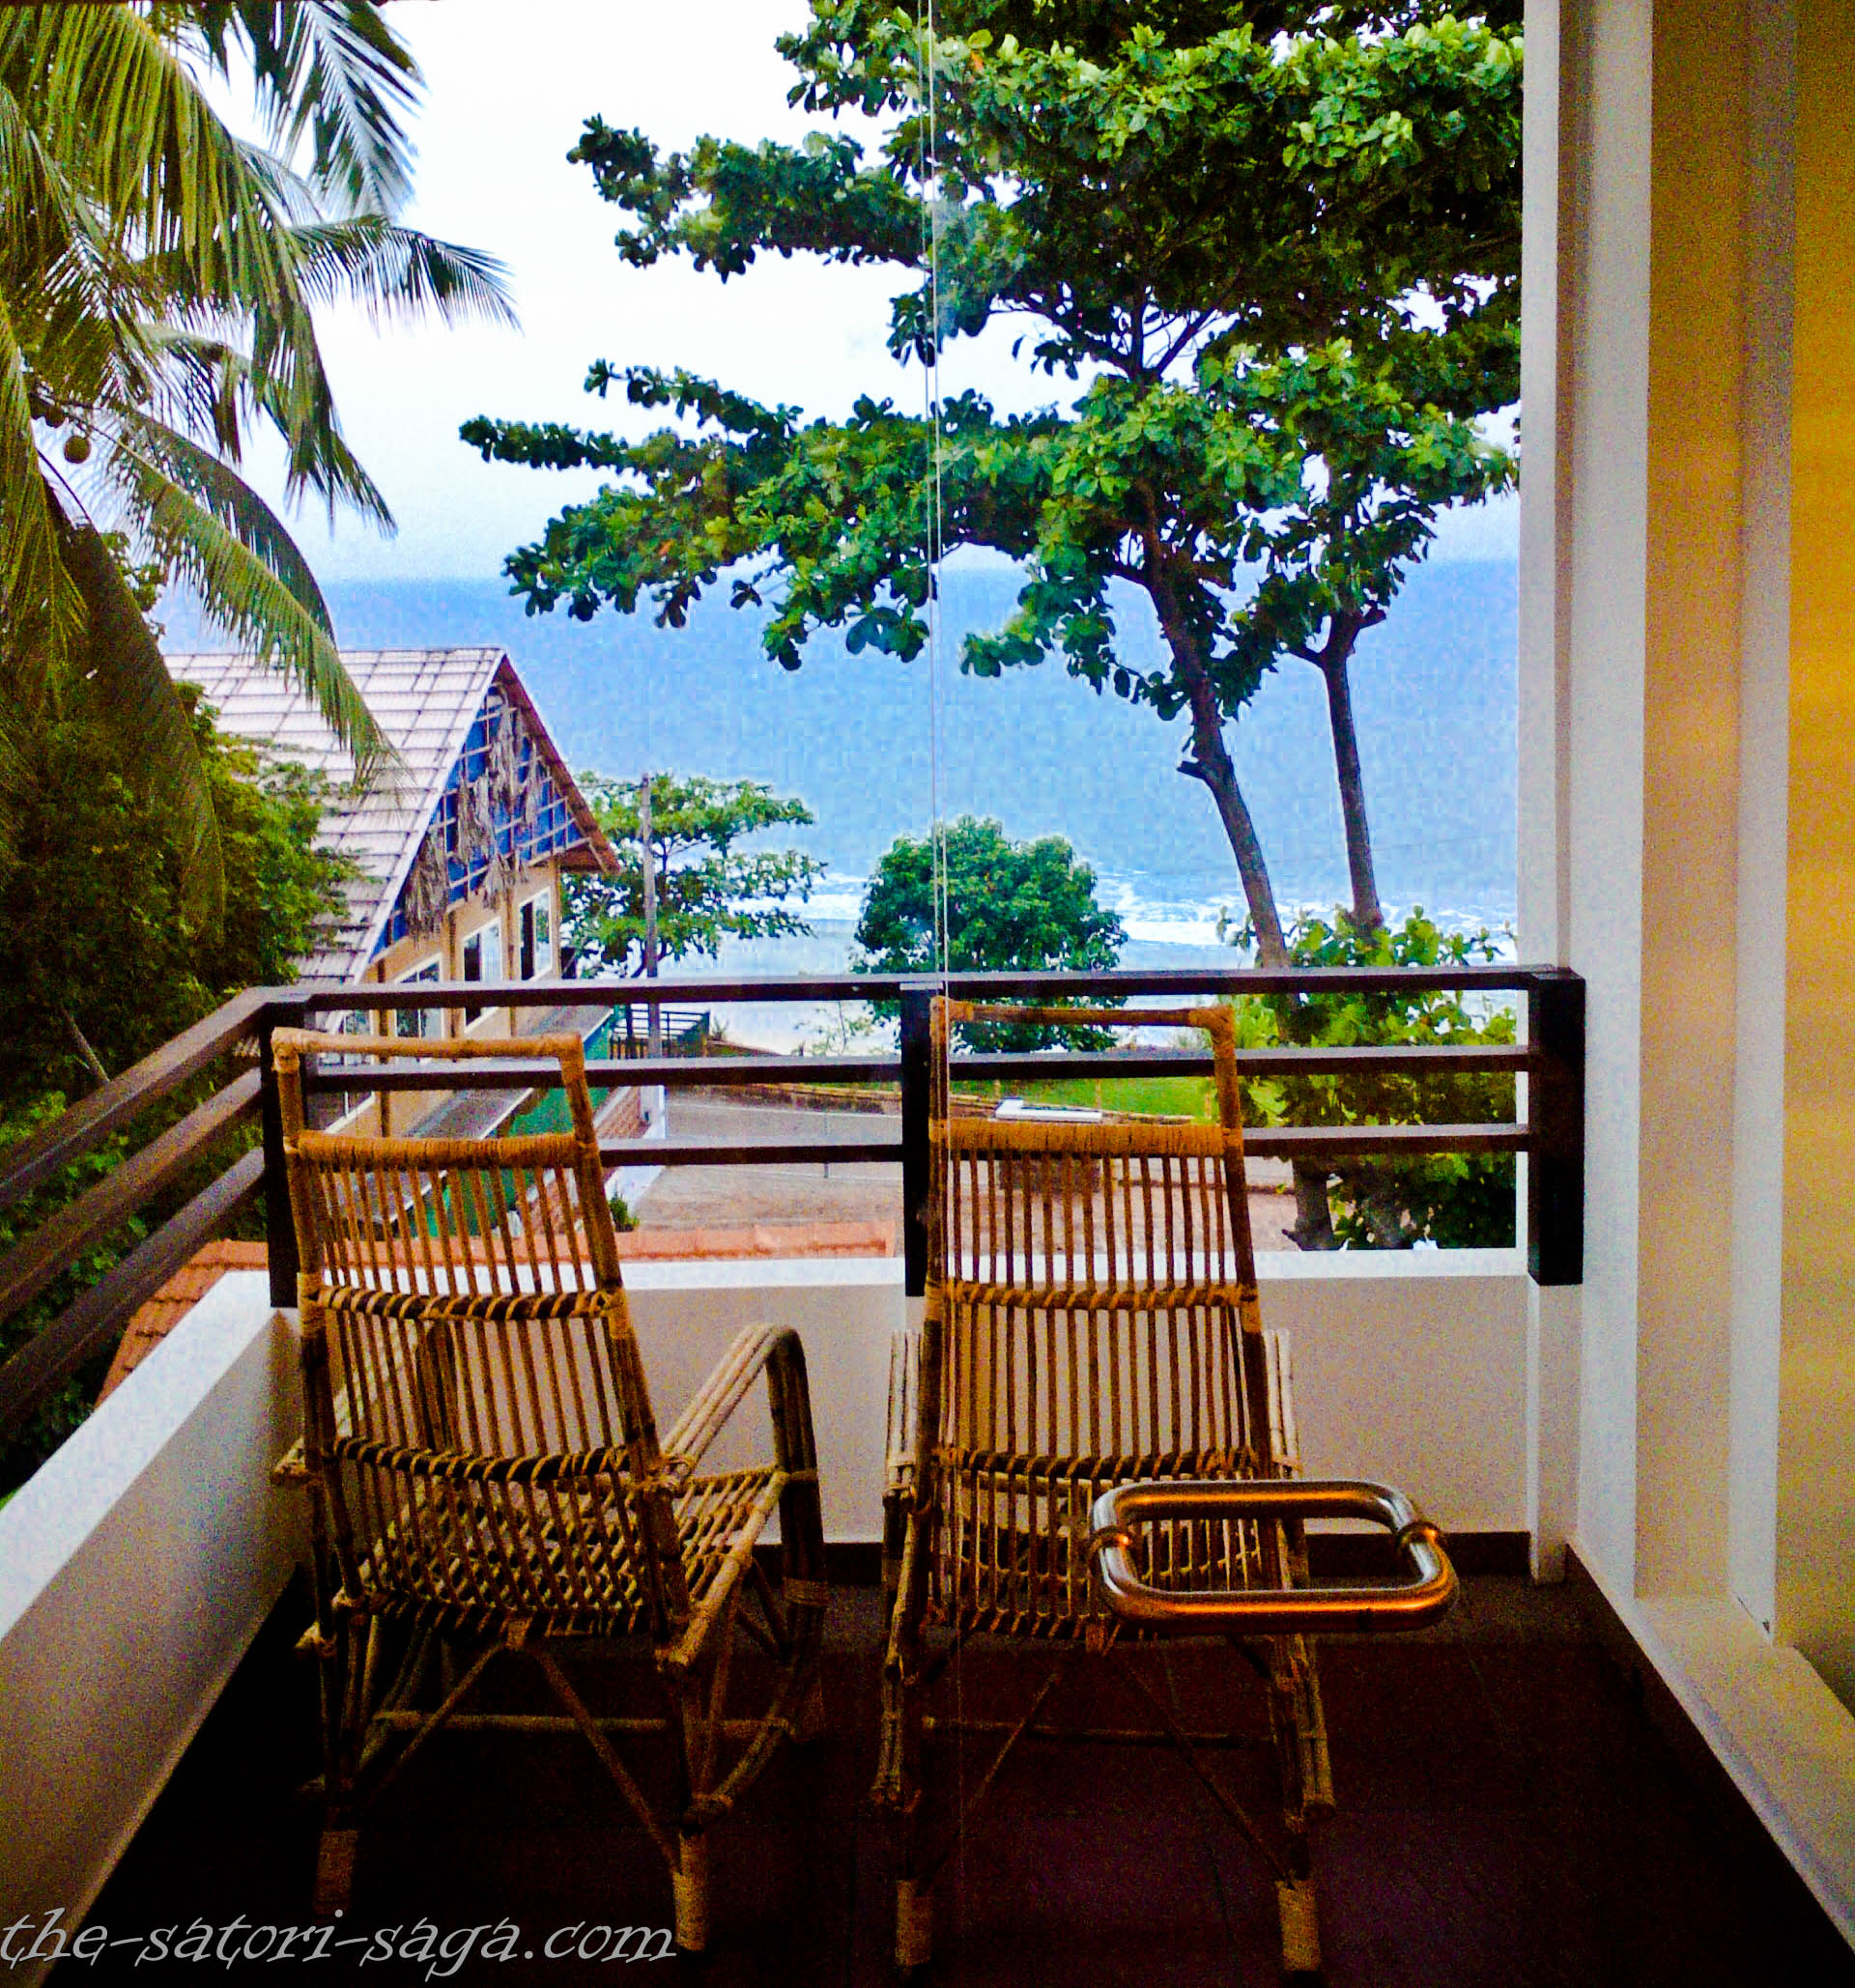 Balcony of hotel Thanal